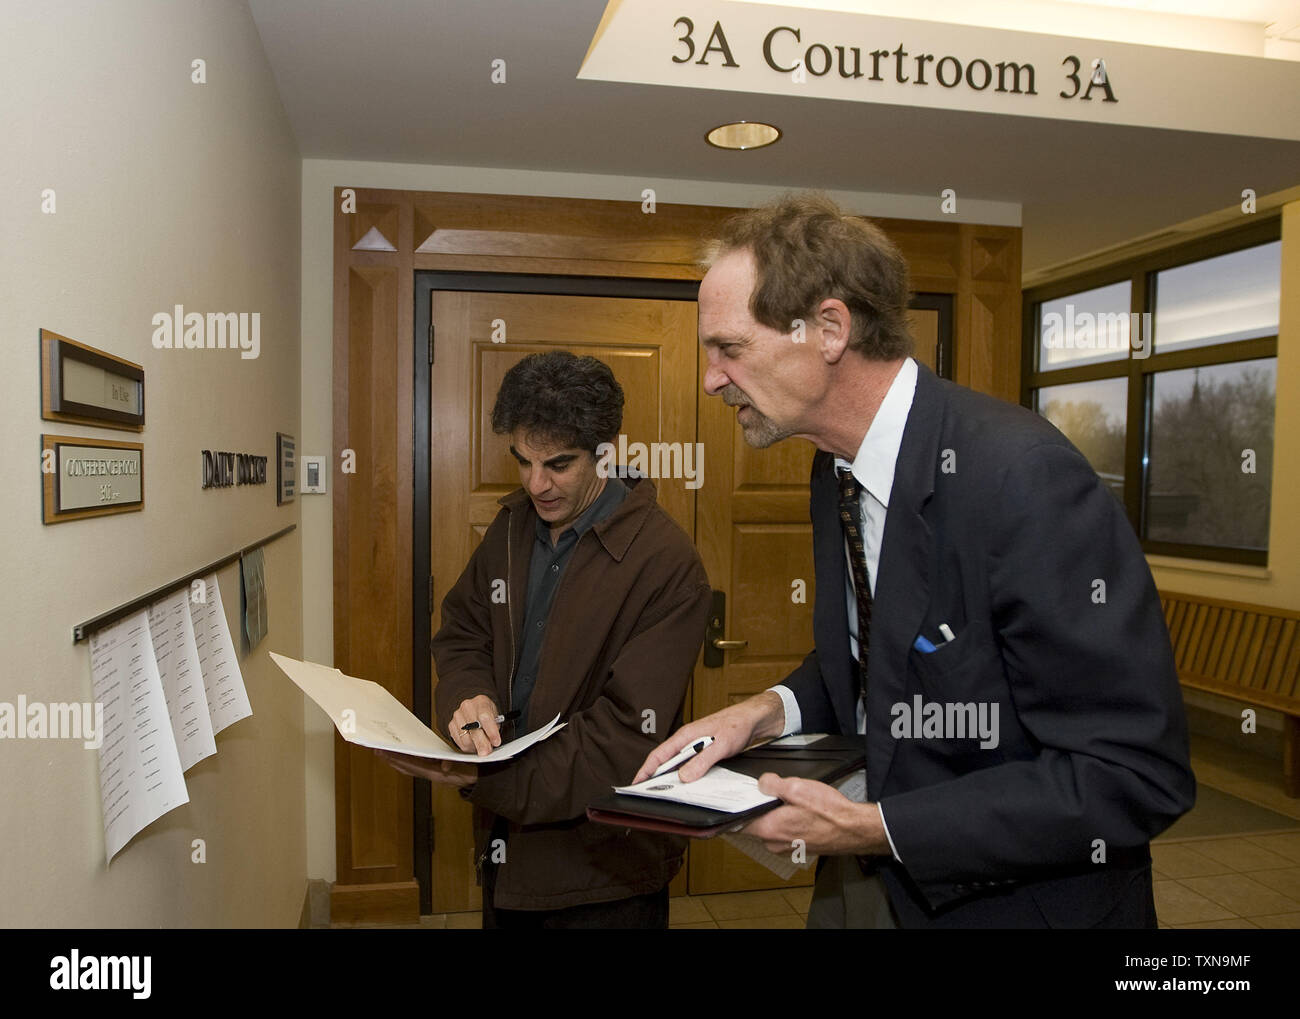 Court Docket Stock Photos & Court Docket Stock Images - Alamy